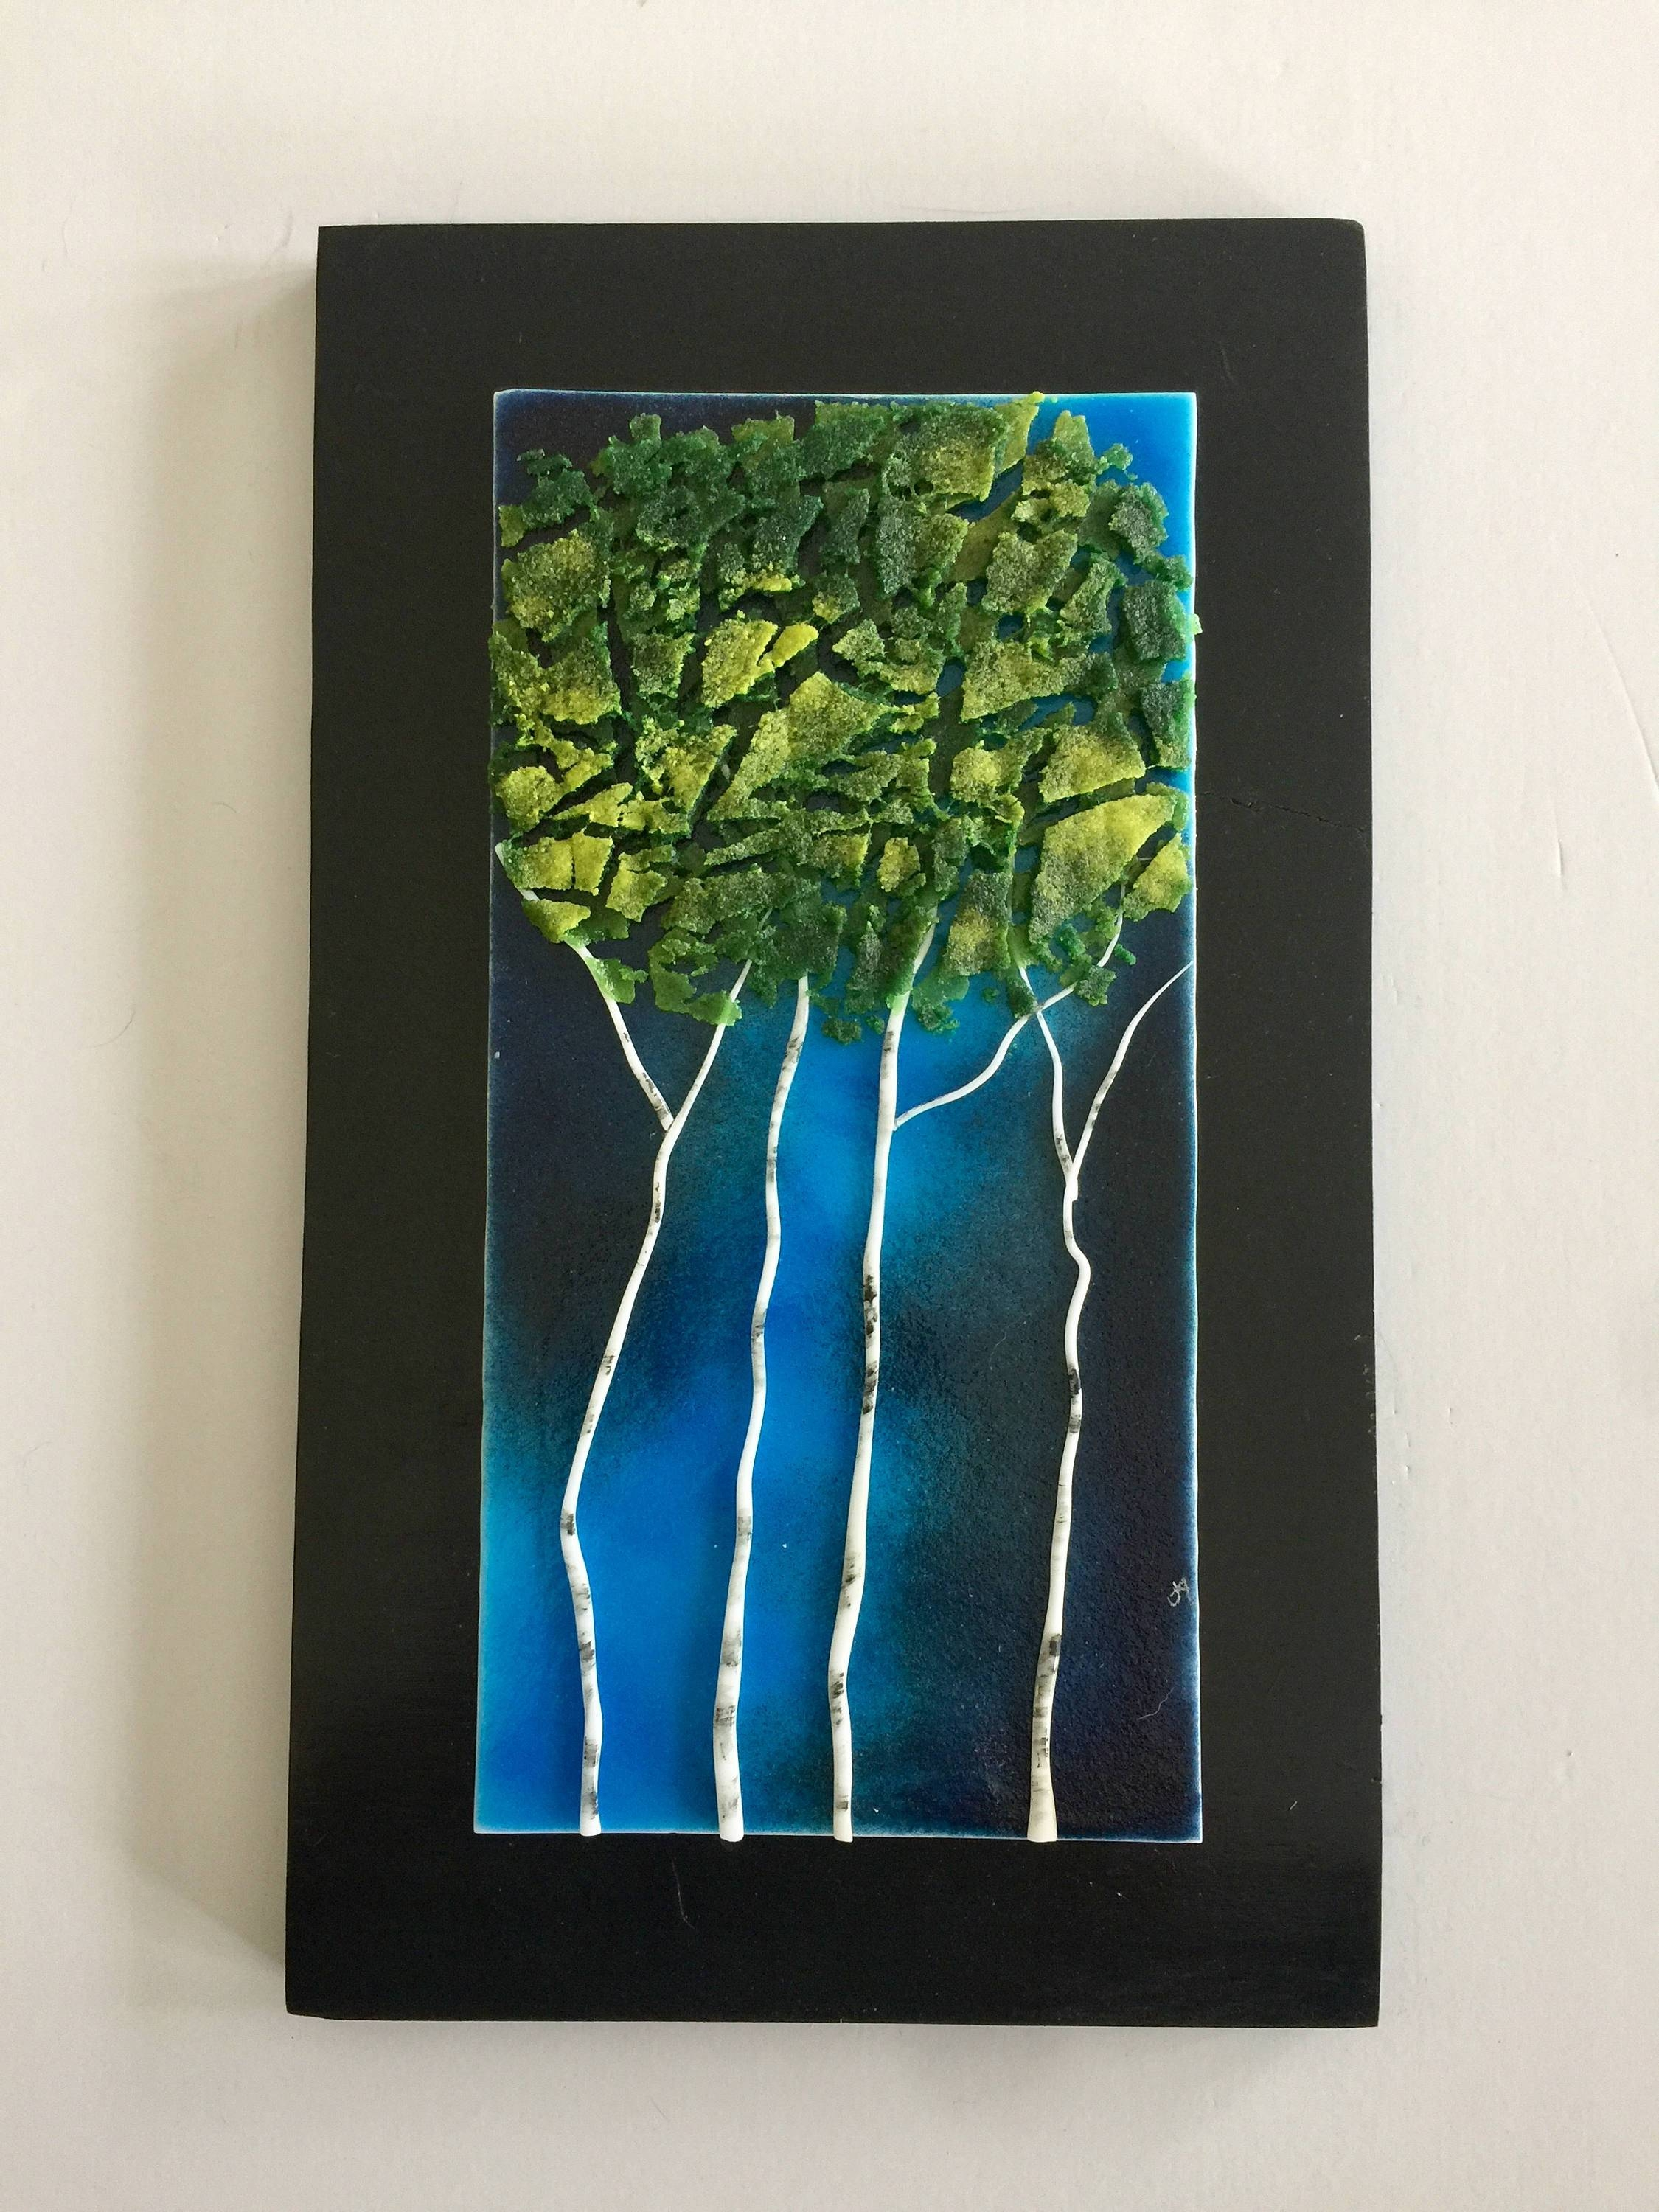 Fused Glass Art, Fused Glass, Handmade Fused Glass,fused Glass Regarding Recent Fused Glass Wall Art Panels (View 3 of 25)